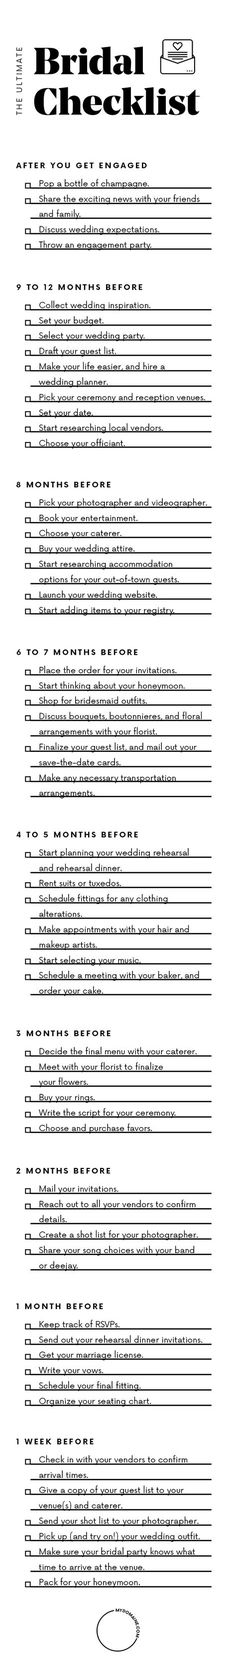 How to prepare for your wedding